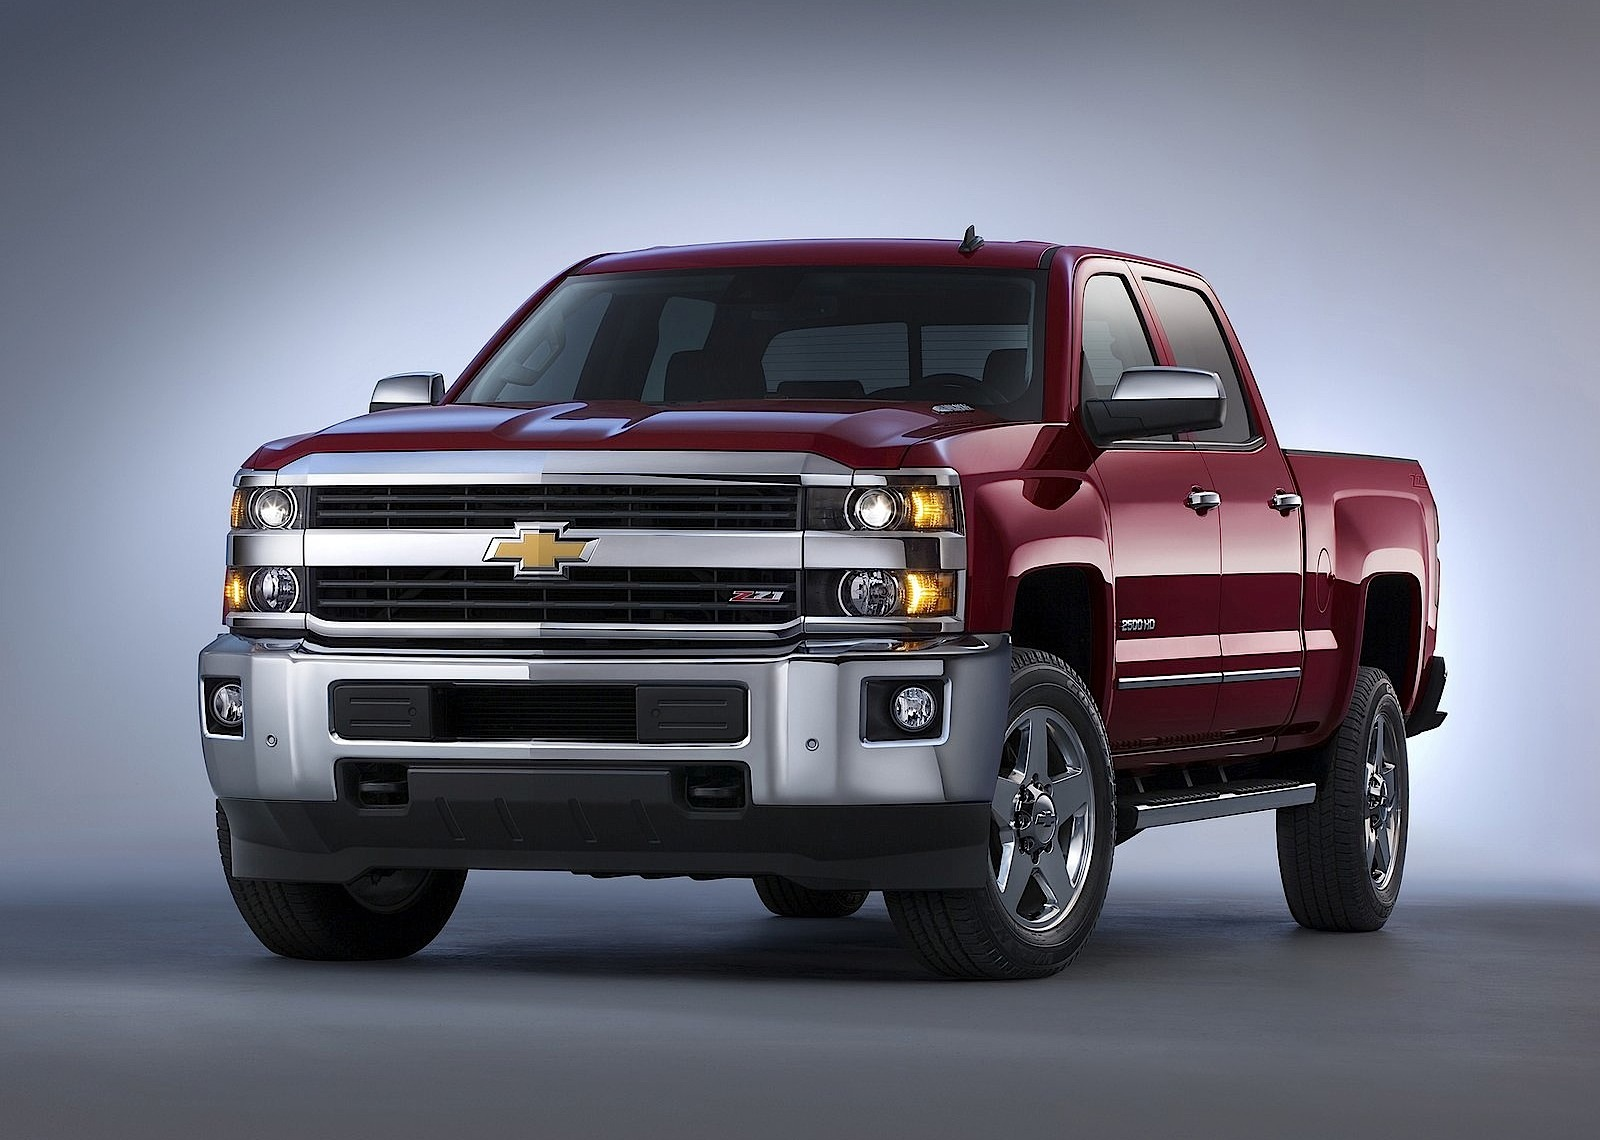 chevrolet silverado 2500 hd crew cab specs 2013 2014 2015 2016 2017 2018 autoevolution. Black Bedroom Furniture Sets. Home Design Ideas